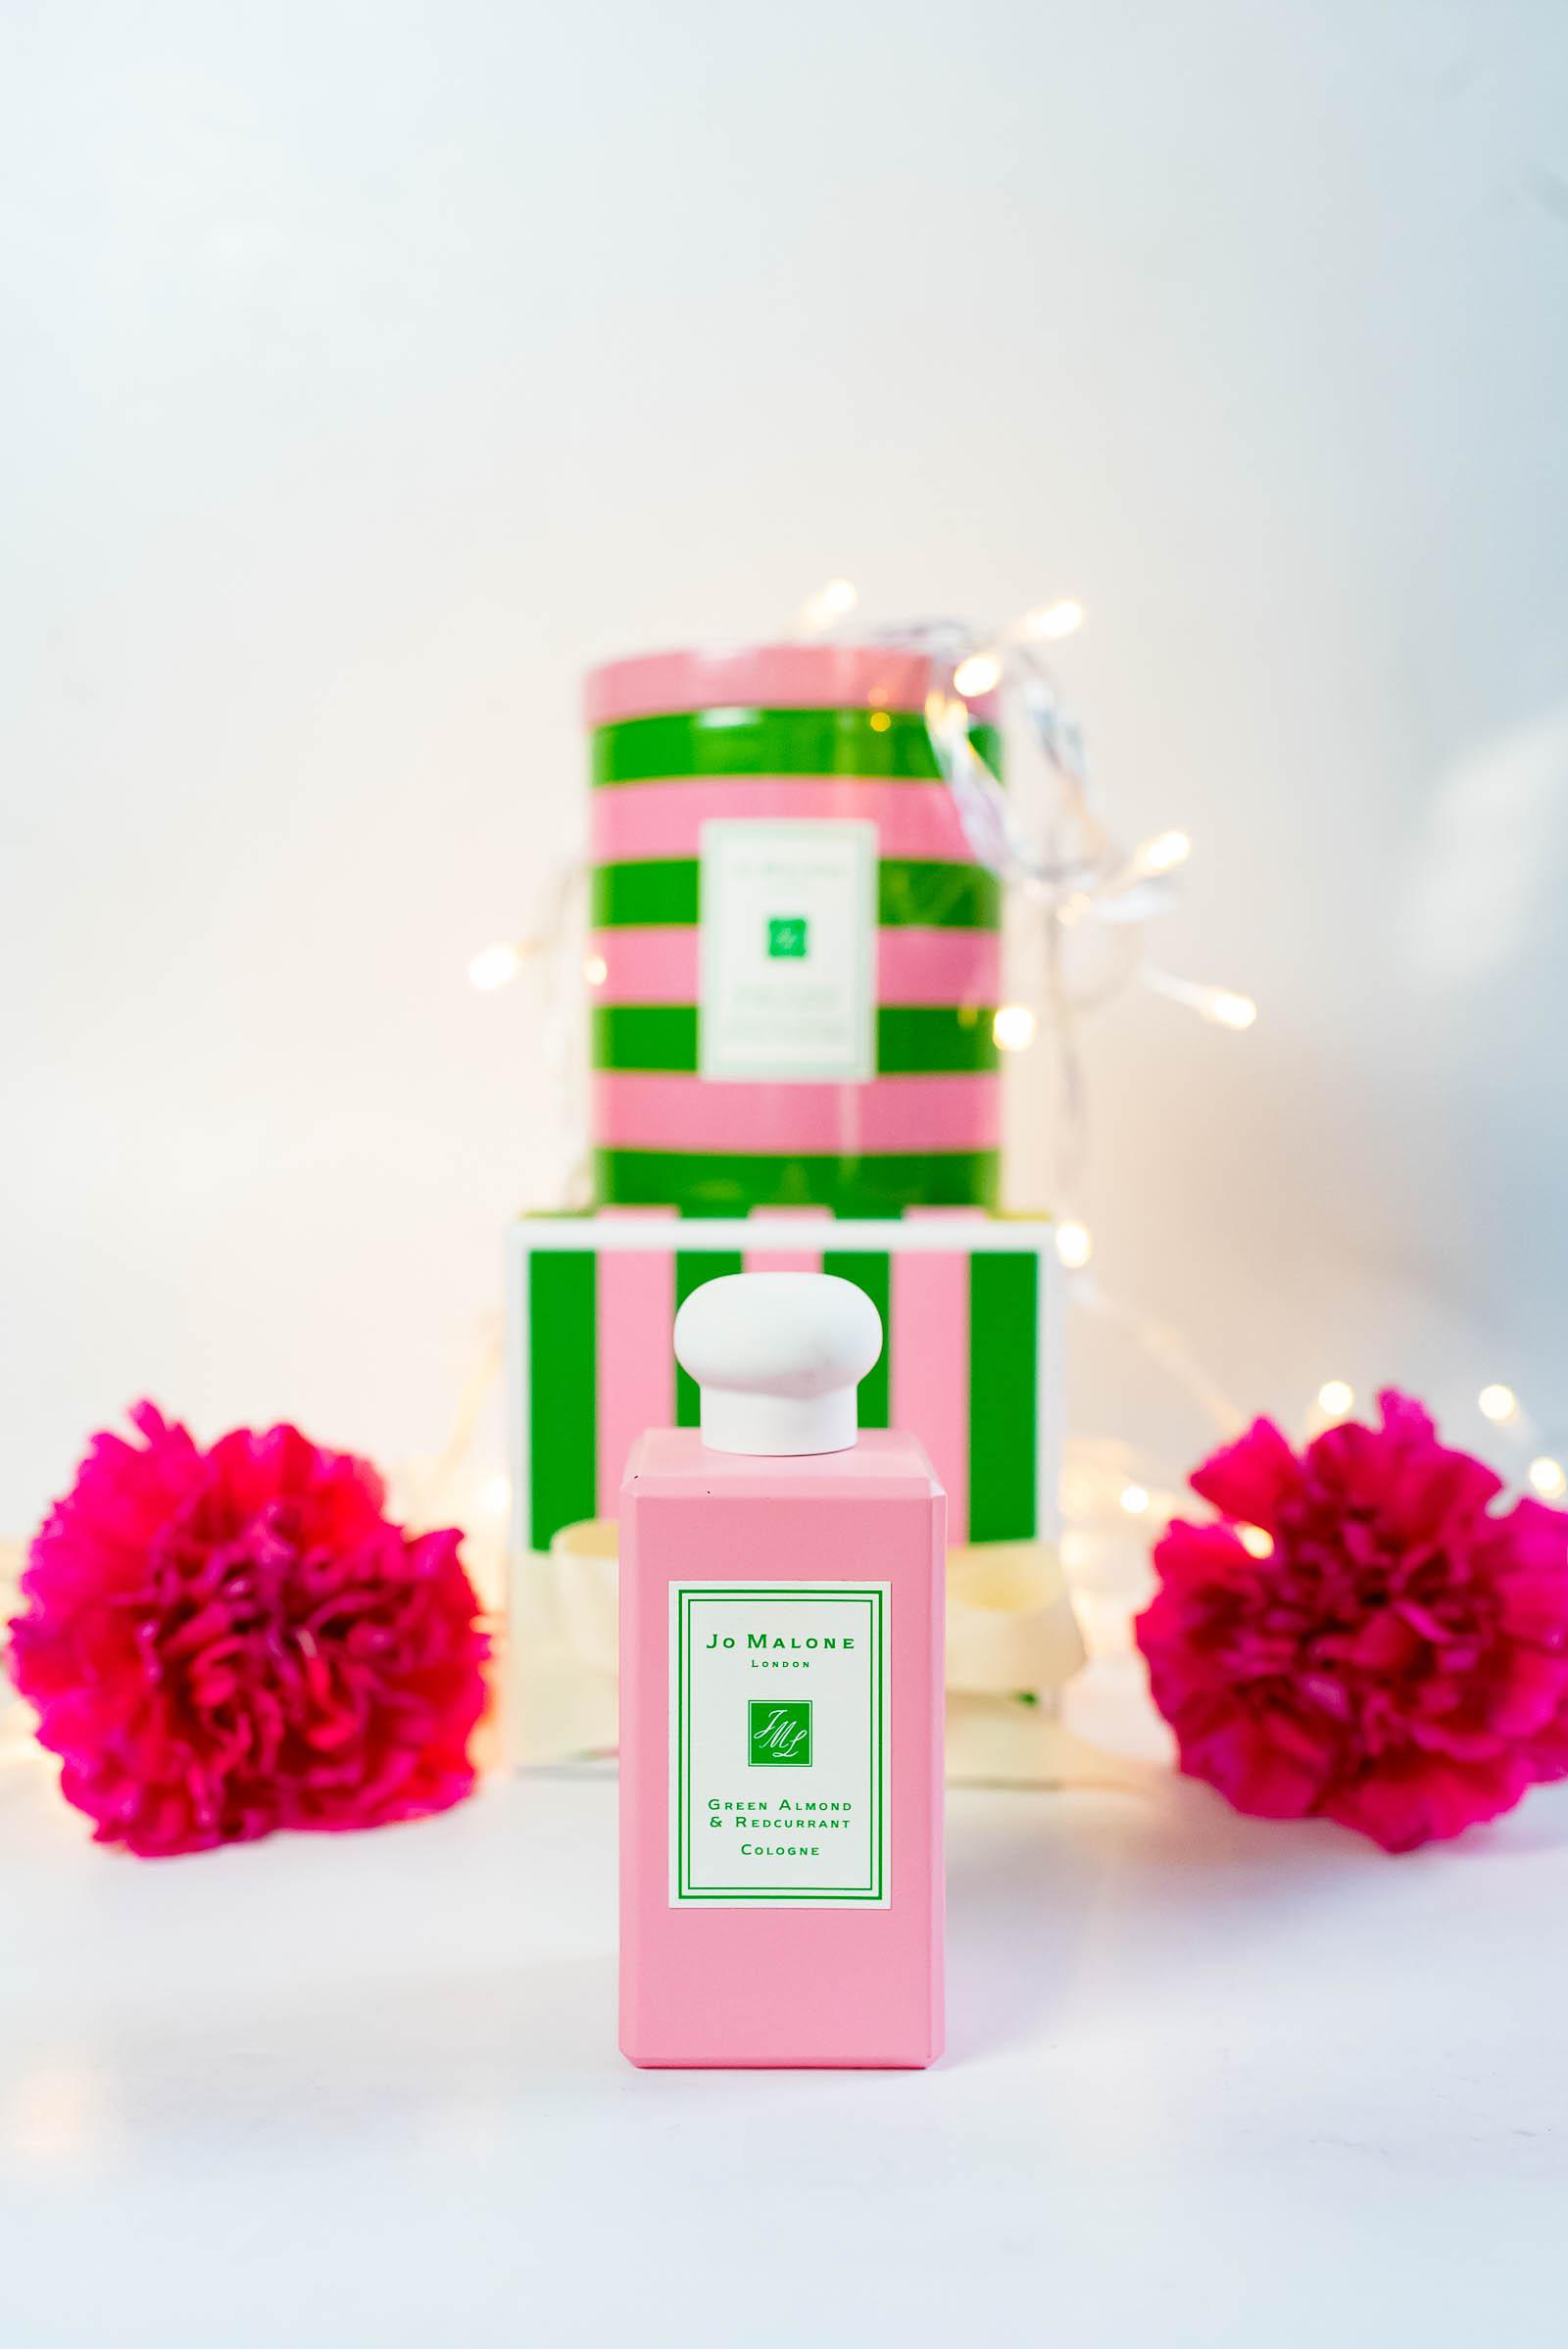 Jo Malone London Green Almond And Redcurrant Cologne and Christmas Candle